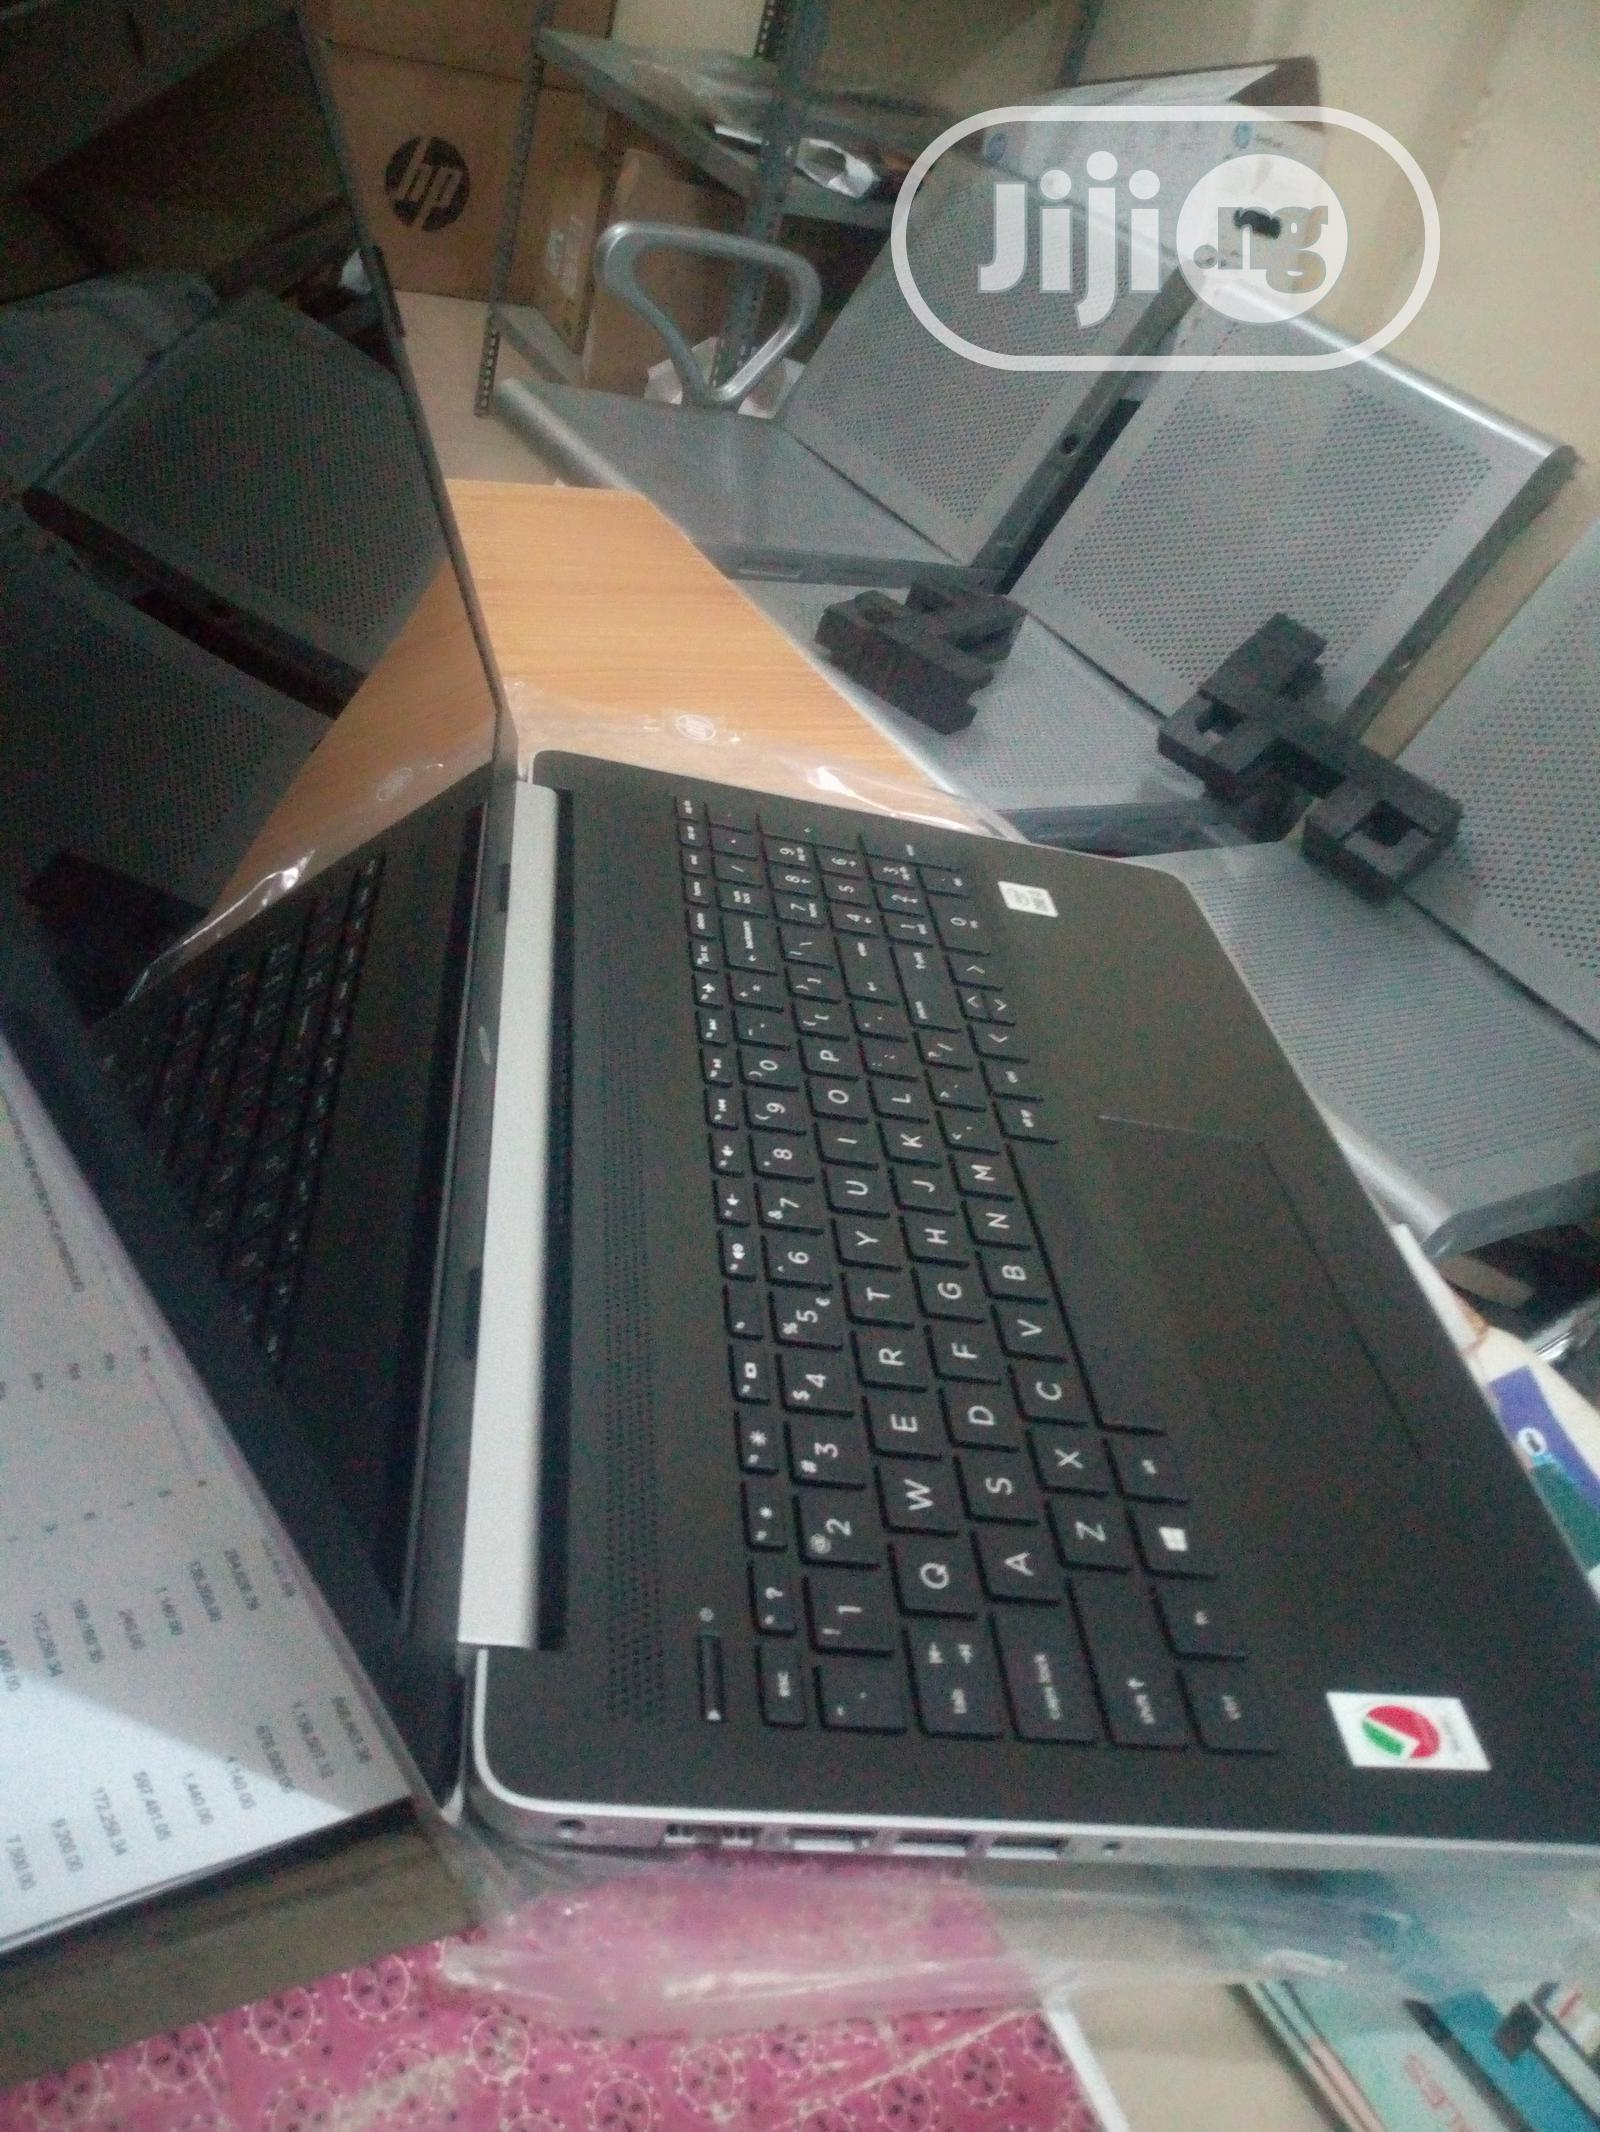 New Laptop HP Stream Notebook 8GB Intel Core i3 HDD 1T | Laptops & Computers for sale in Fagge, Kano State, Nigeria